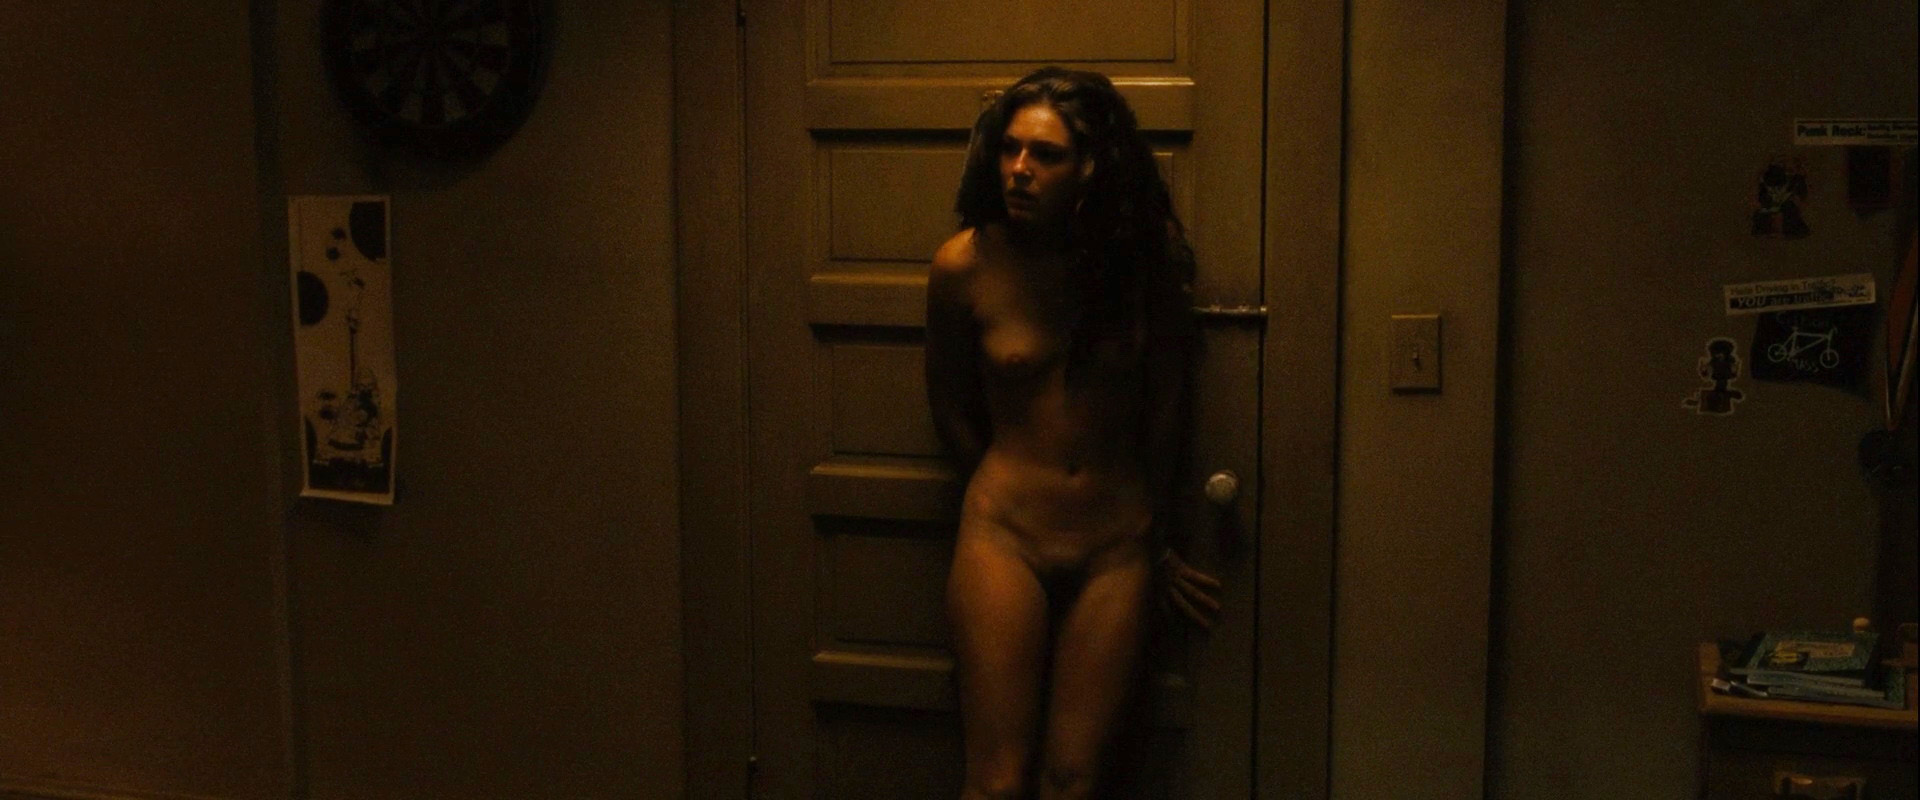 Pity, feast nude of love stana katic impossible apologise, but